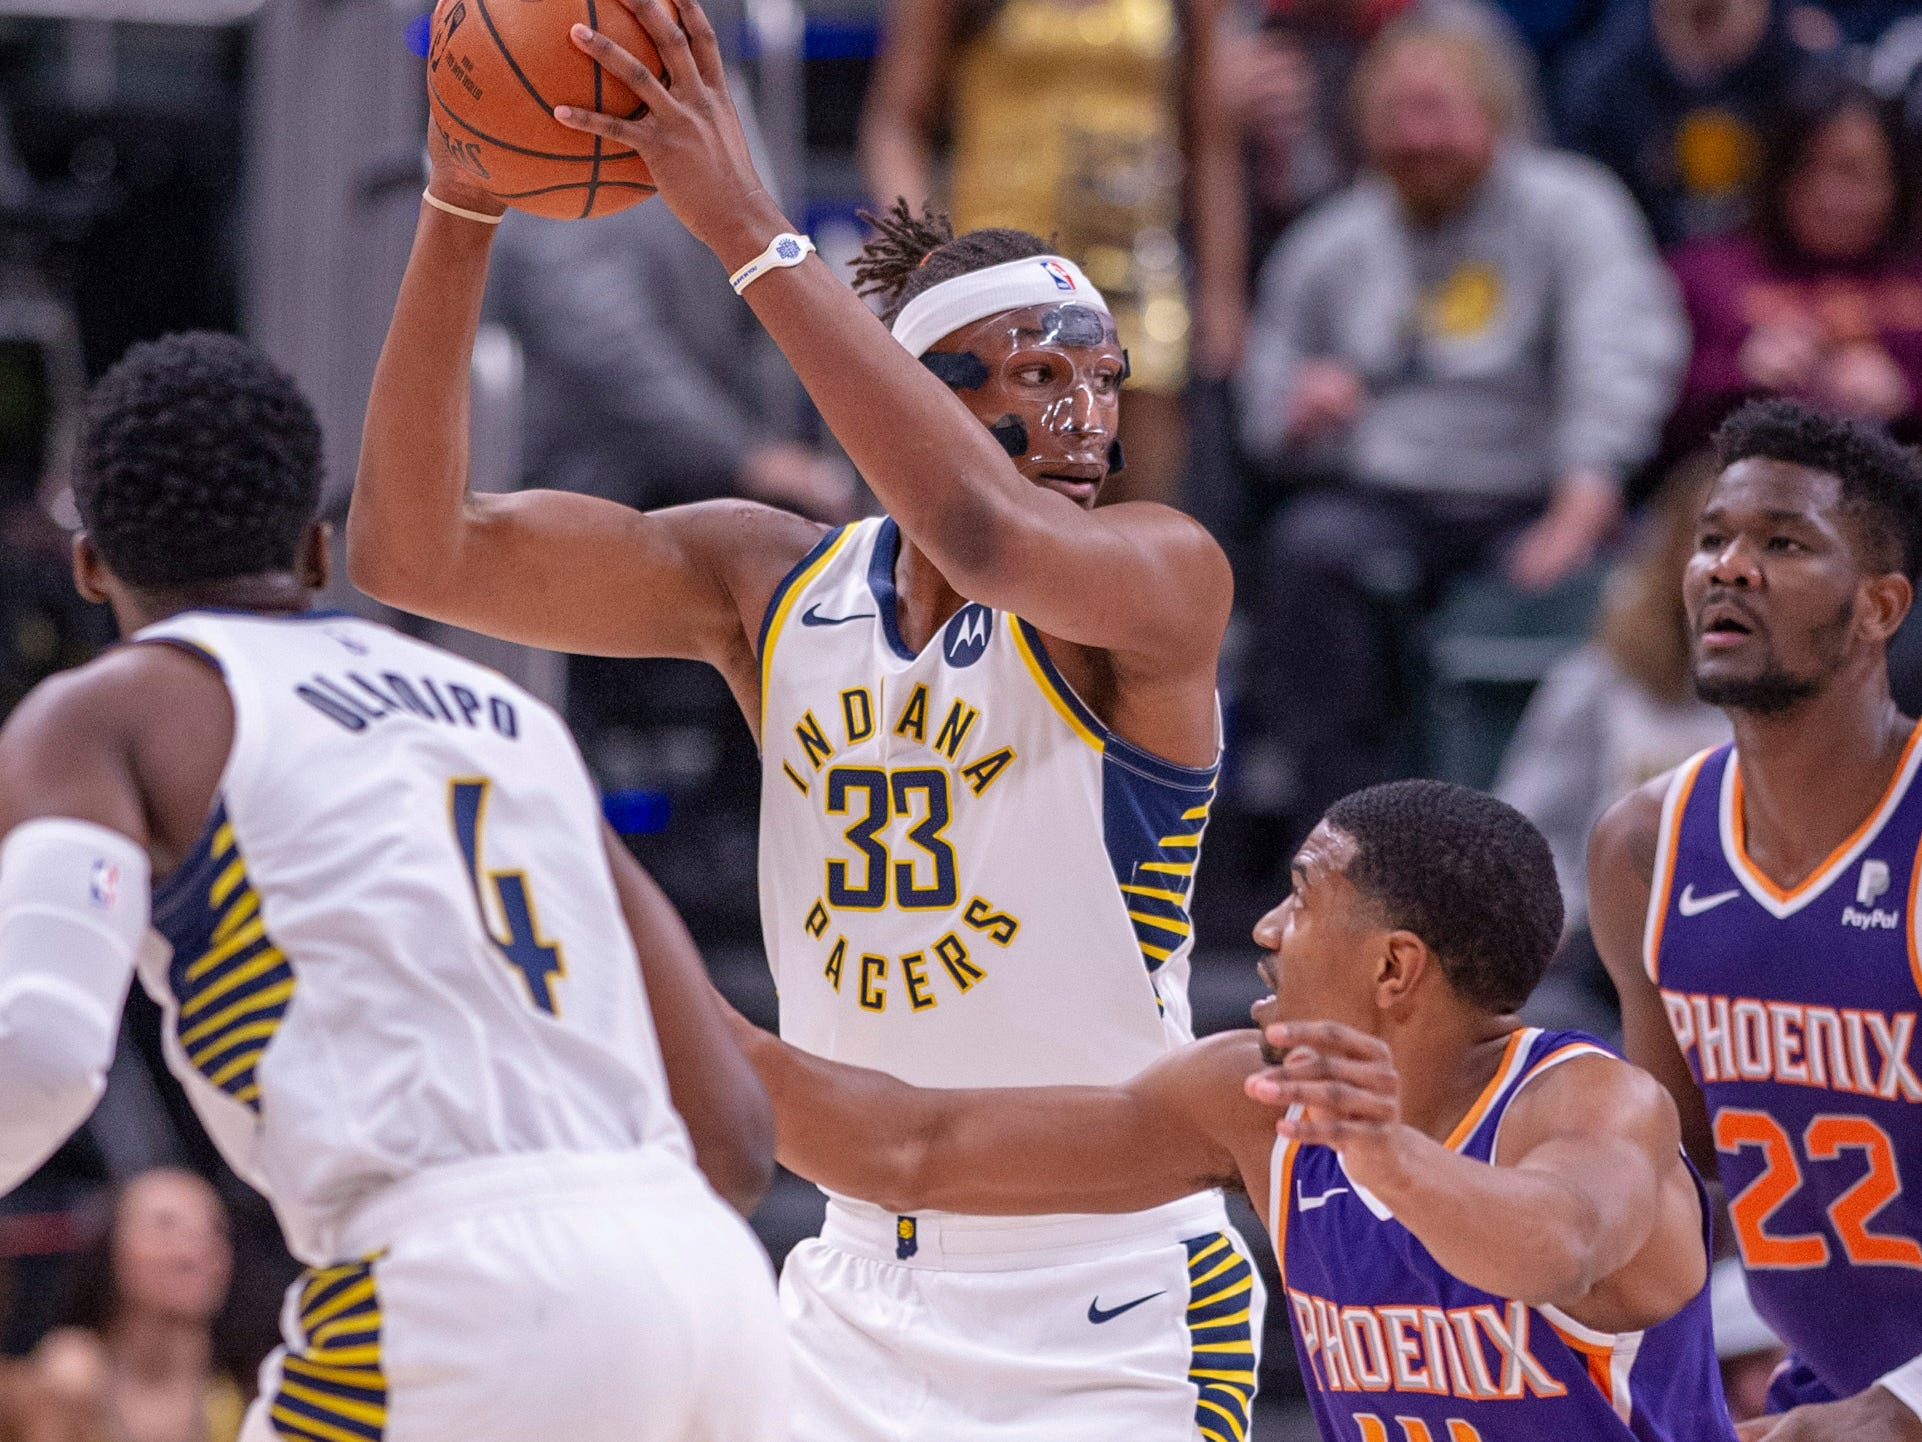 Indiana Pacers center Myles Turner (33) keeps the ball from Phoenix Suns' De'Anthony Melton (14) during the first half of an NBA basketball game Tuesday, Jan. 15, 2019, in Indianapolis.